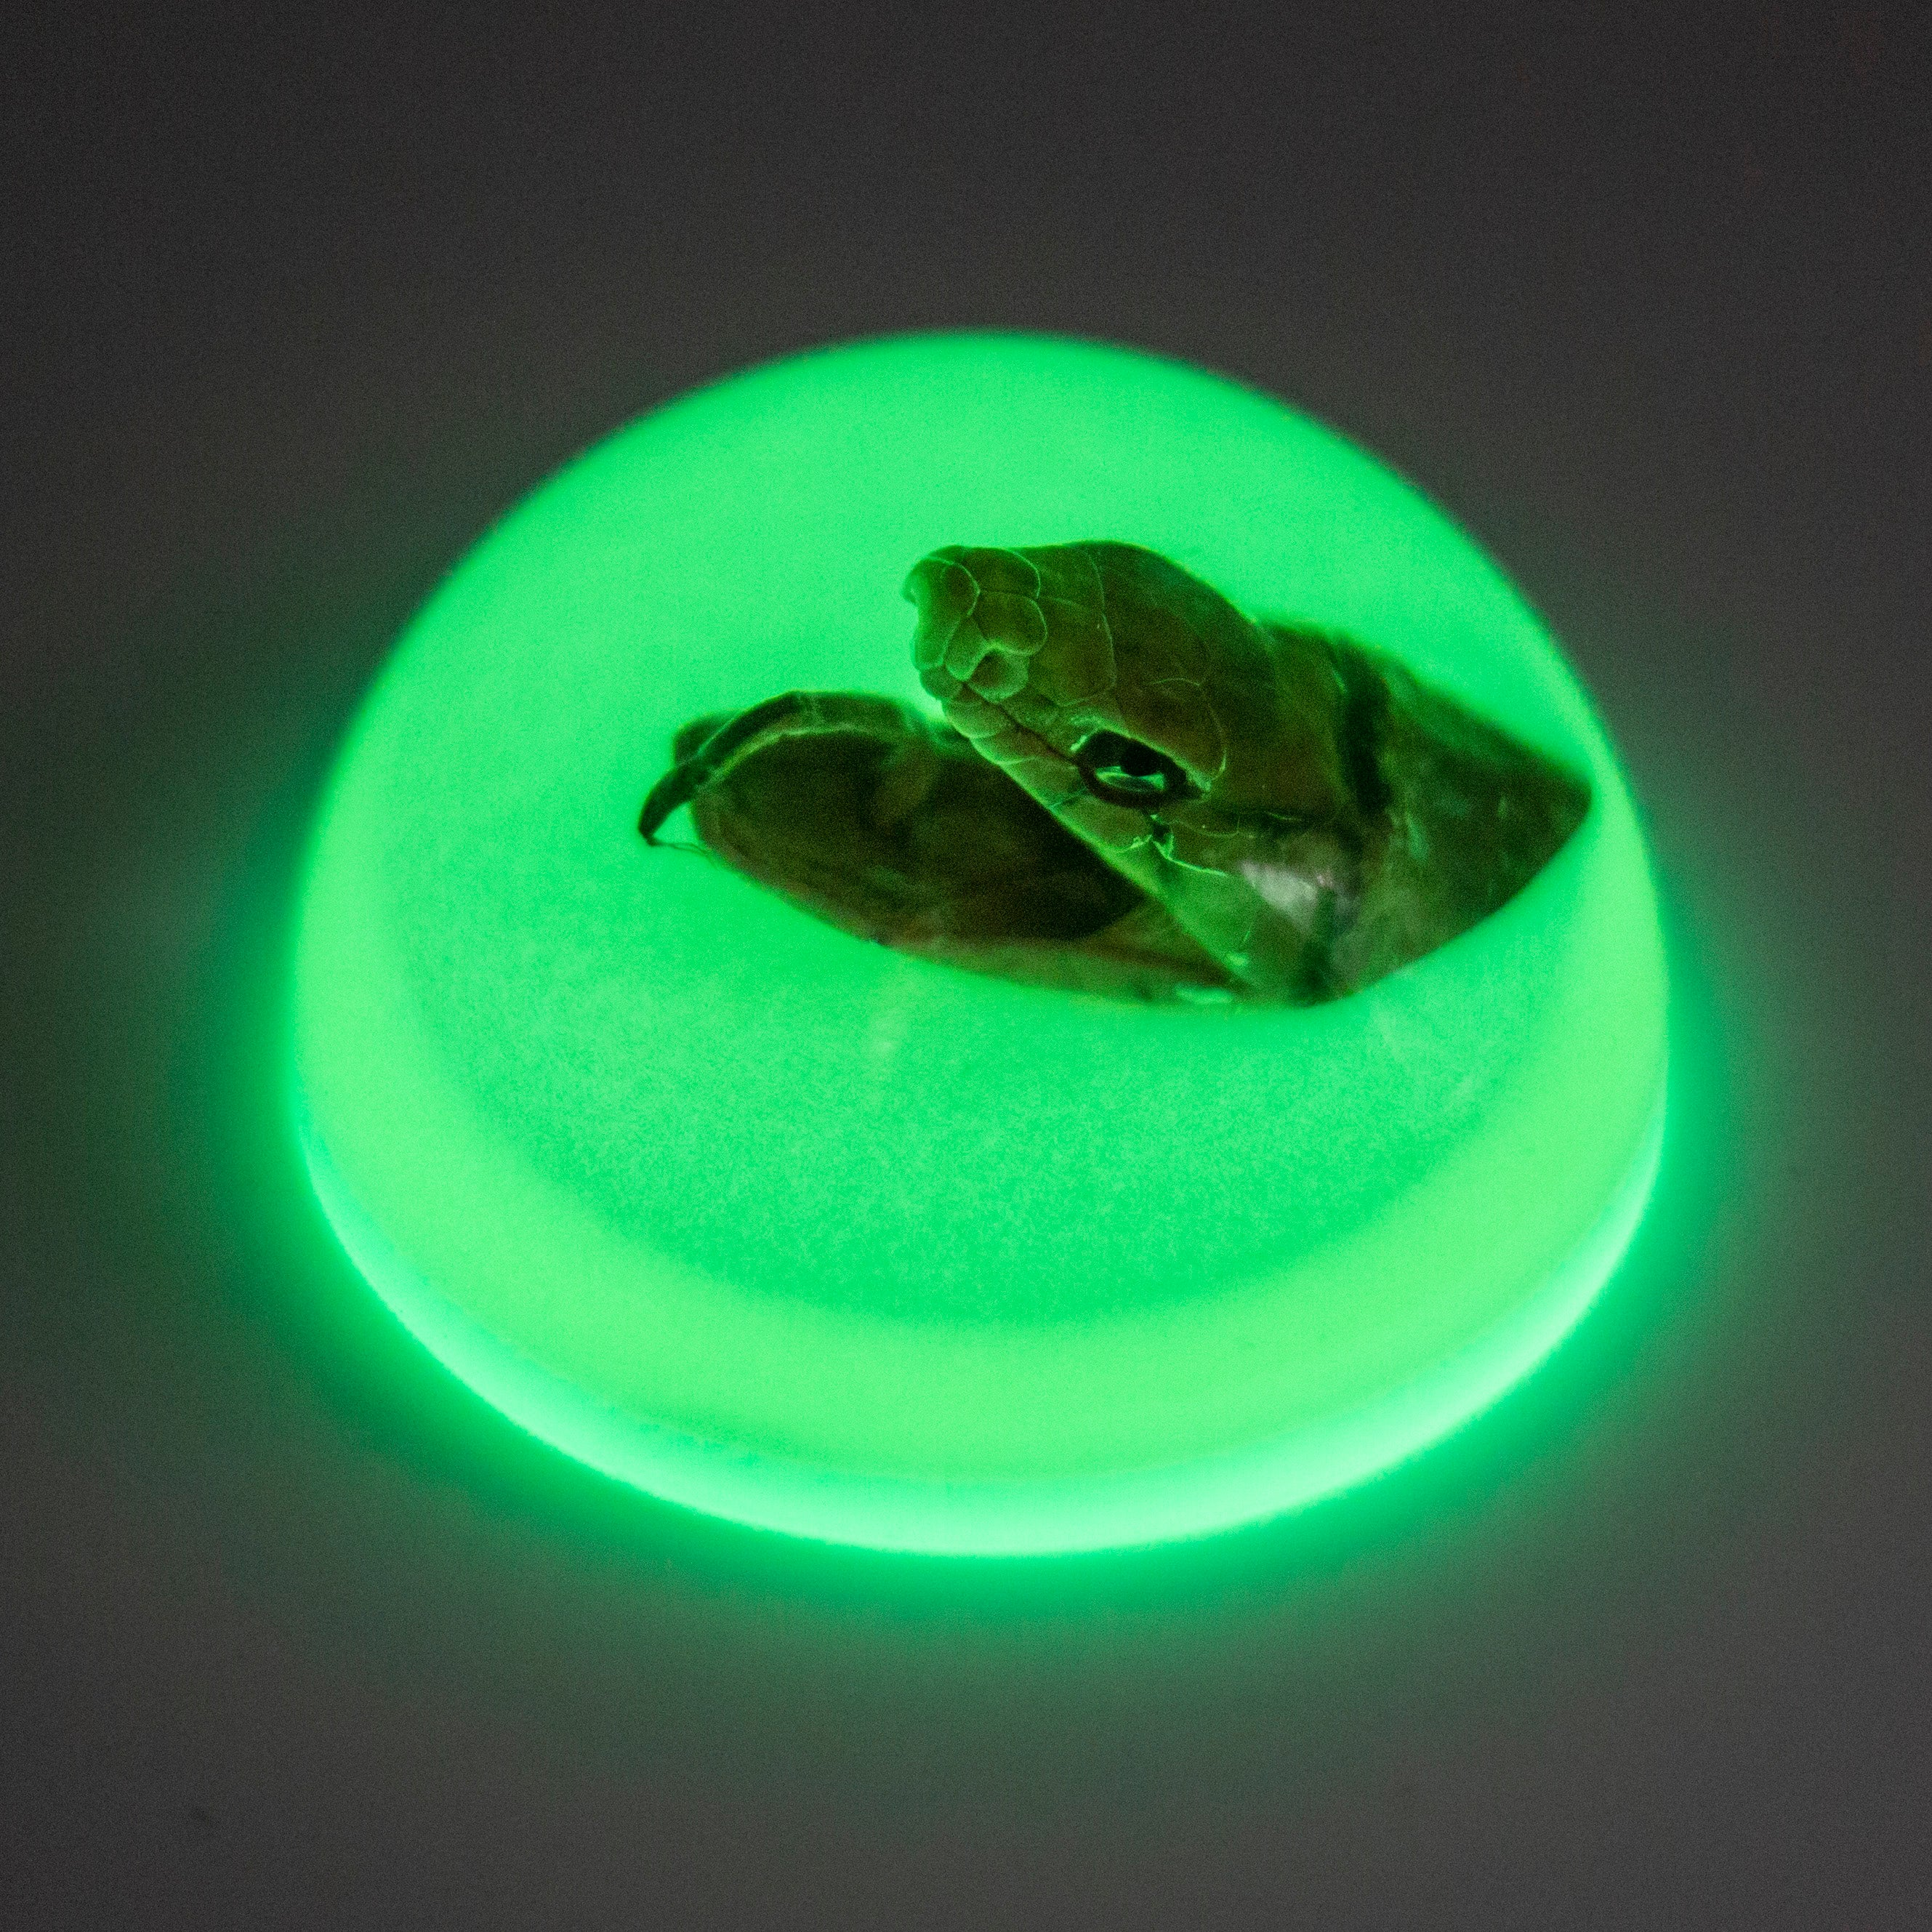 Snake Head Glow in the Dark Paperweight